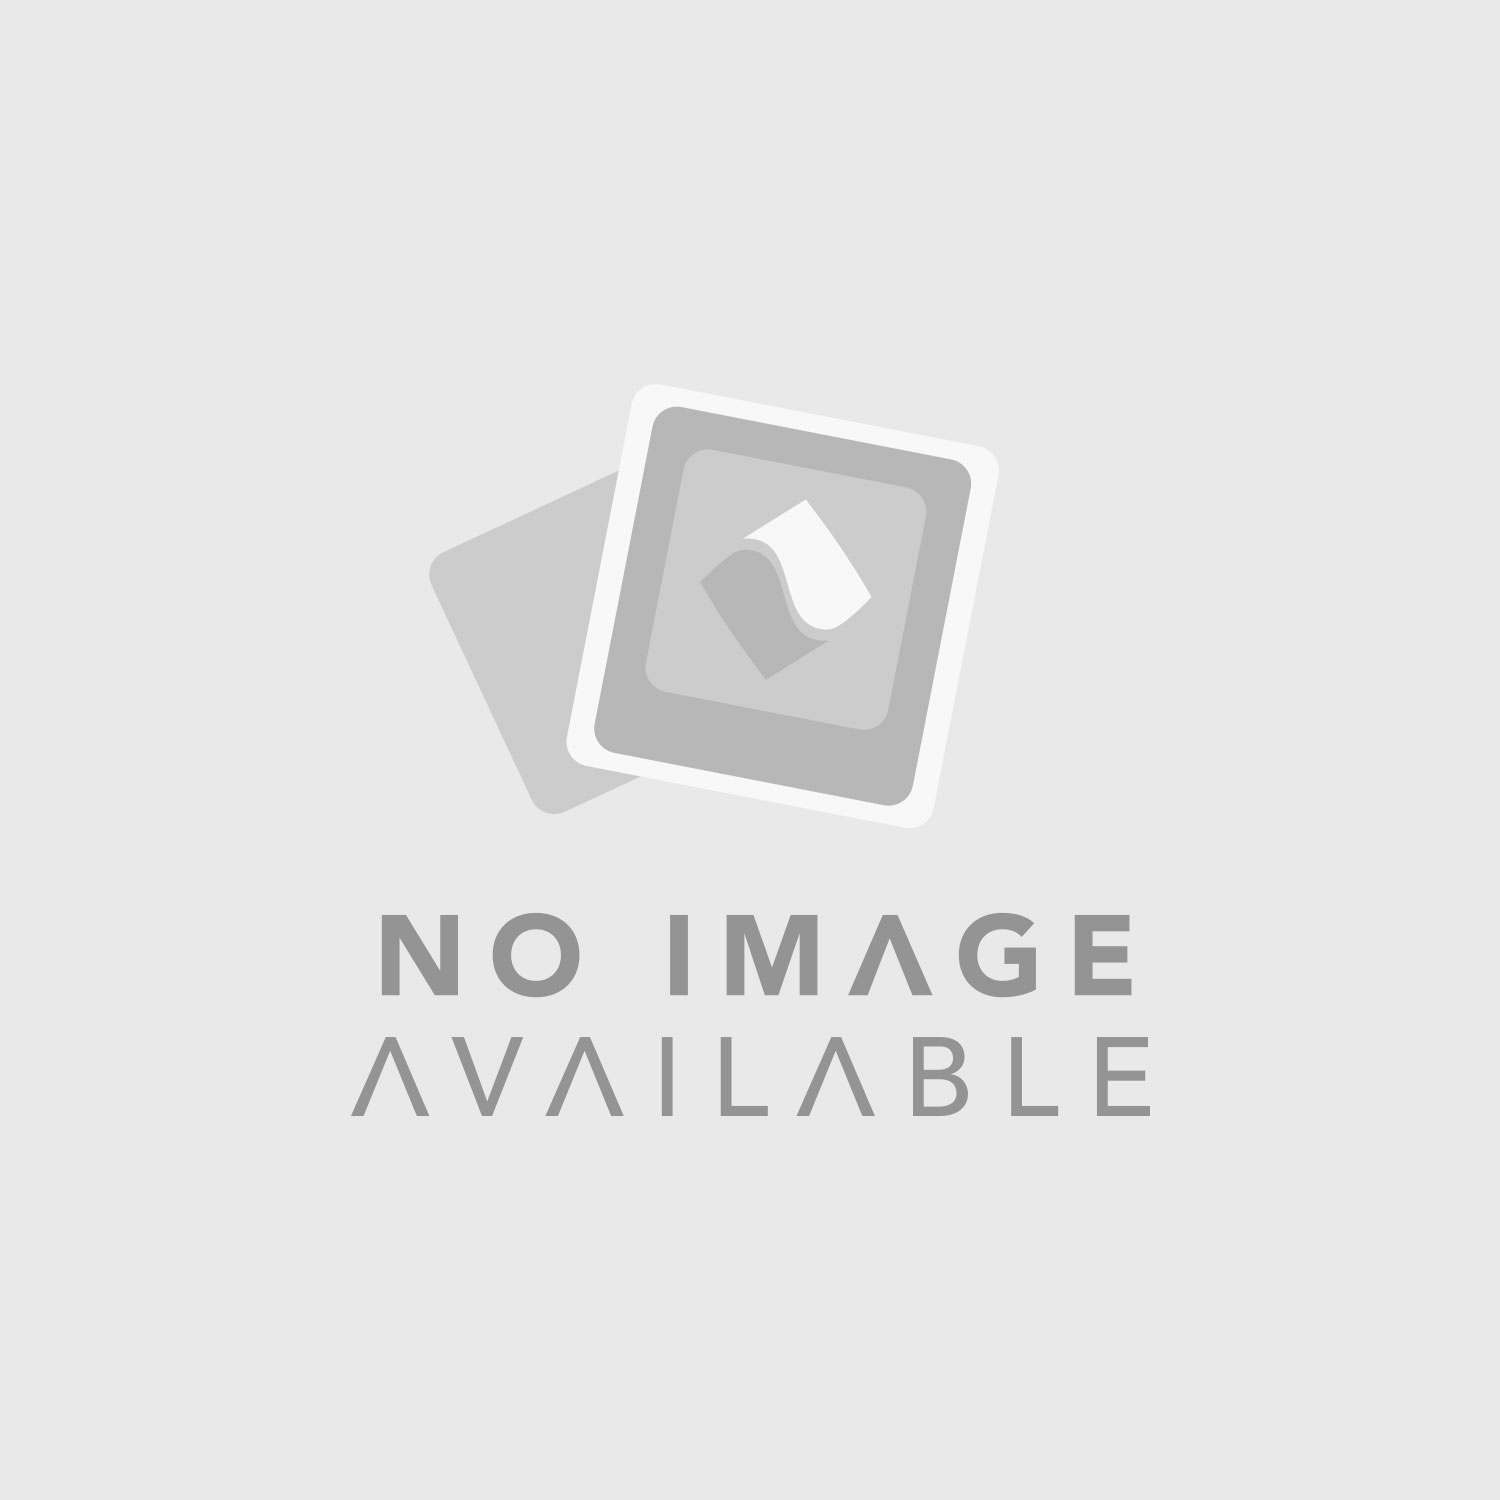 D'Addario EXP16 Light Coated Phosphor Bronze Acoustic Guitar Strings (6-String Set, 12-53)